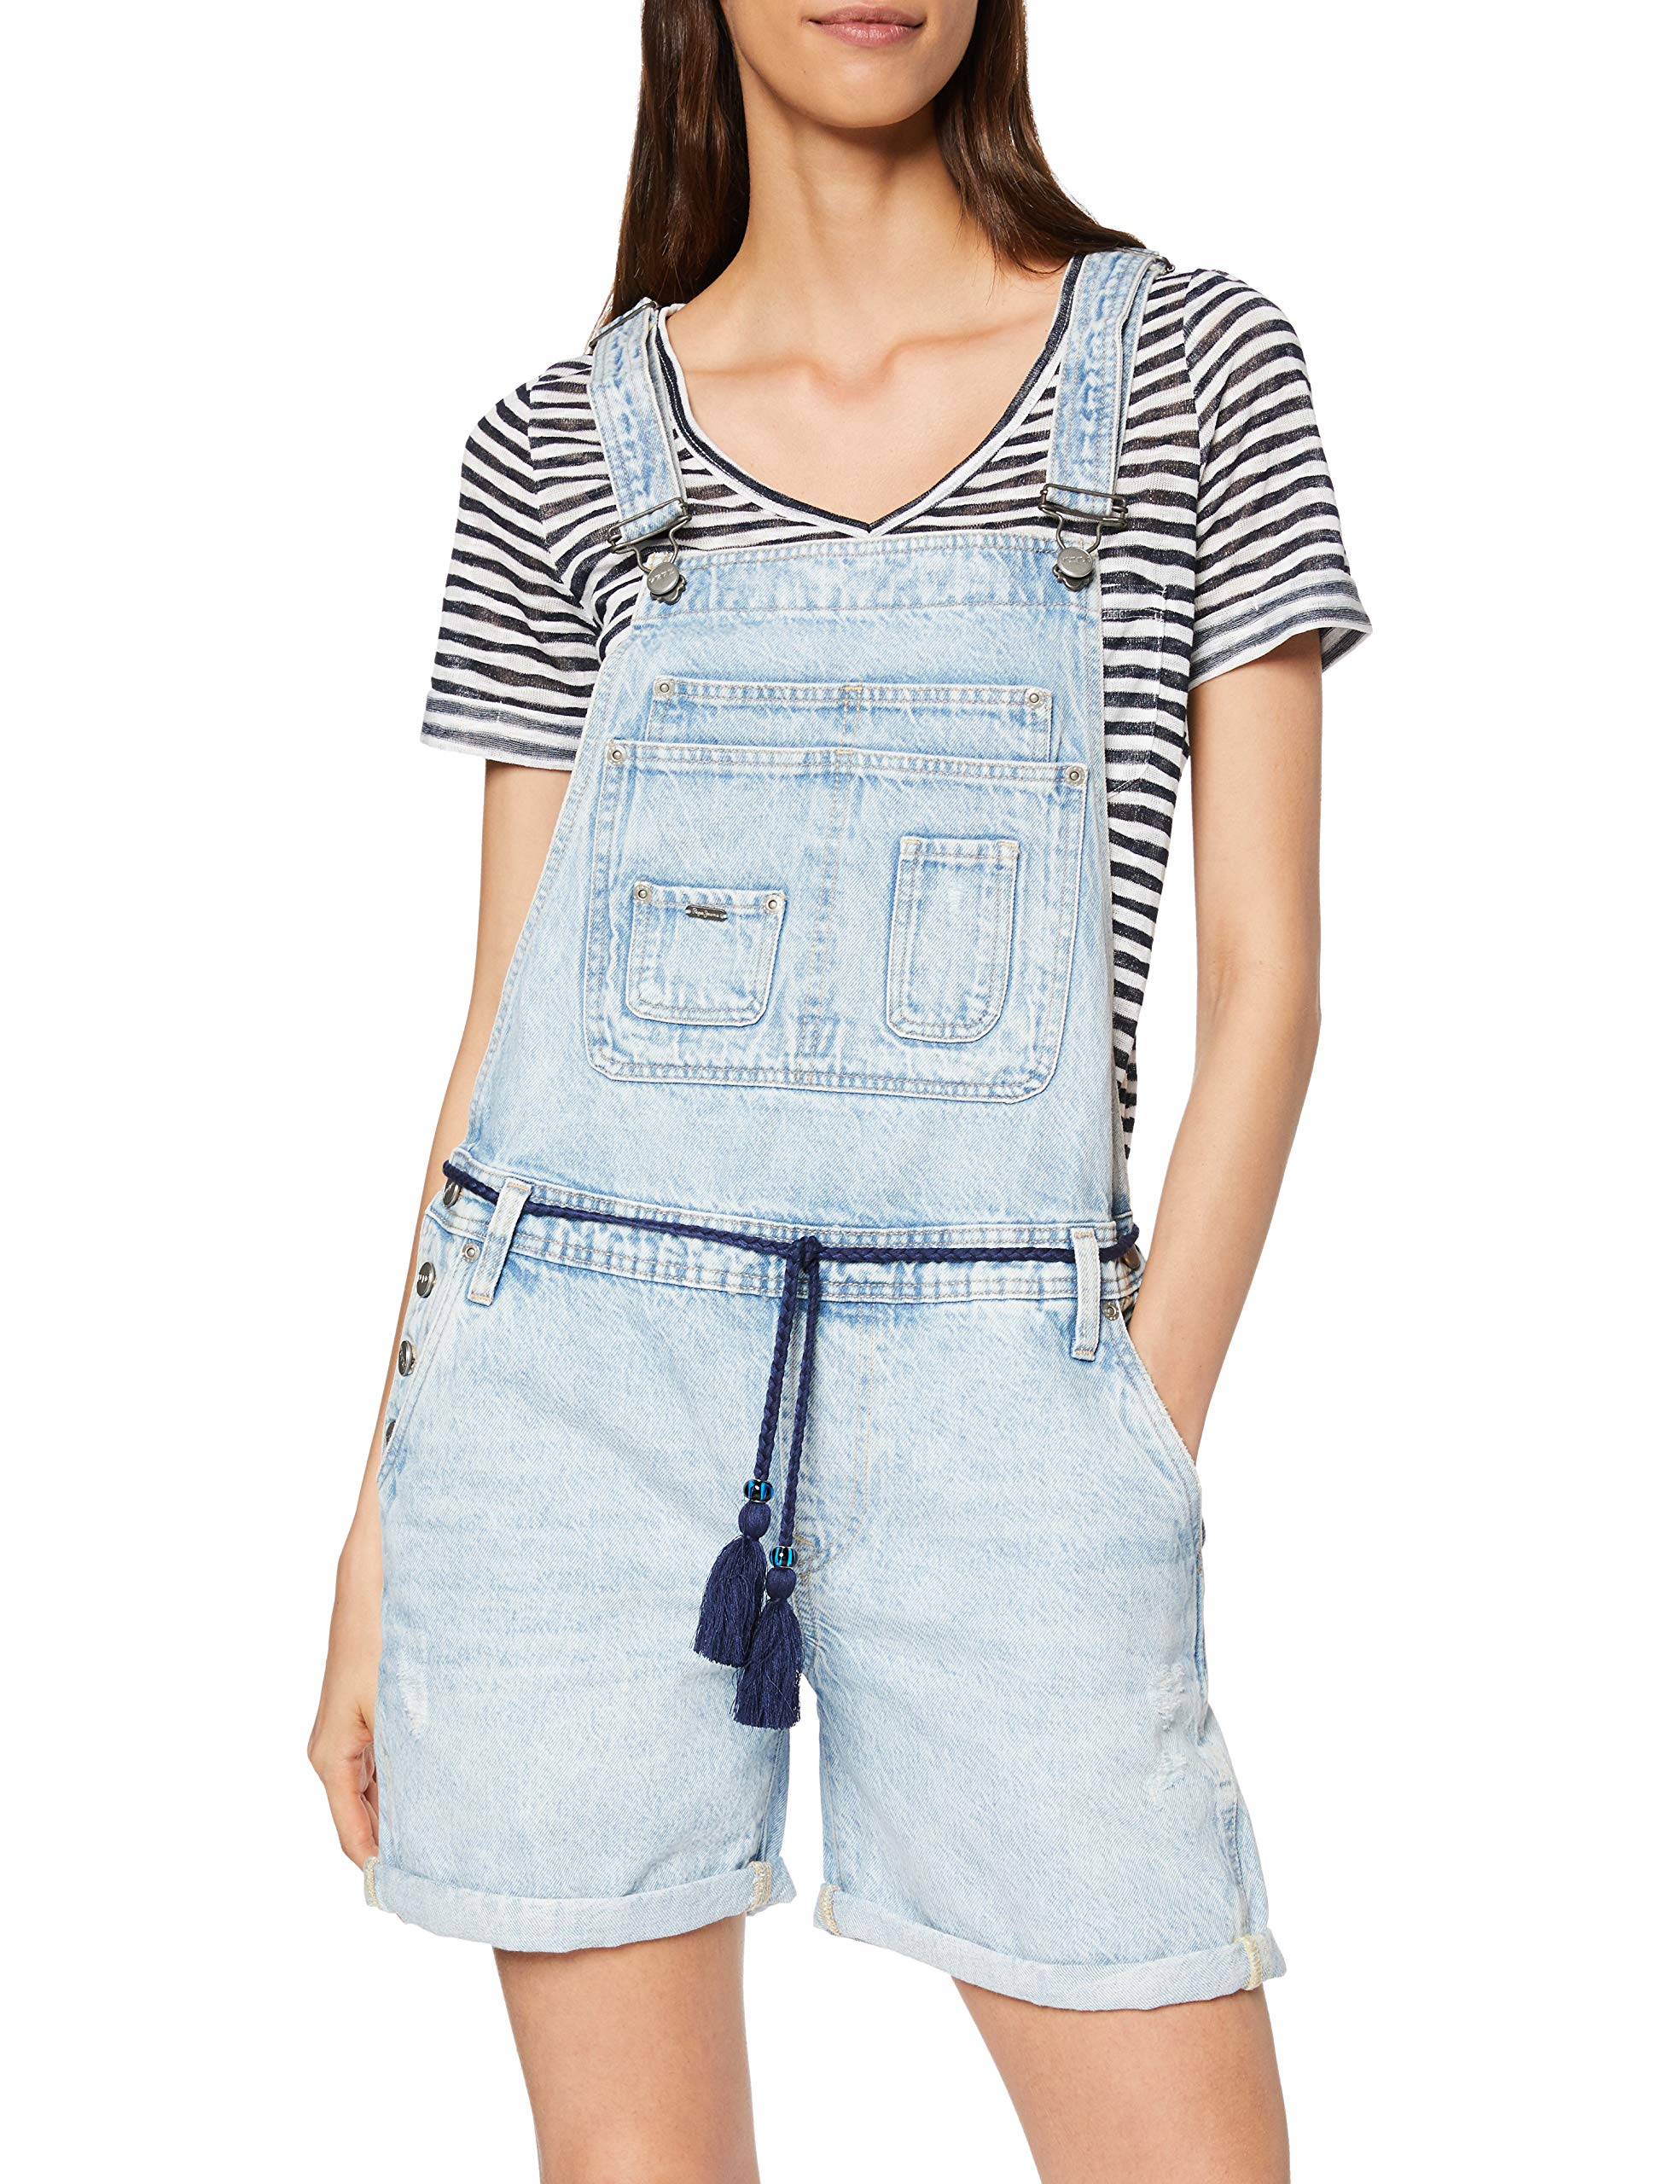 000X Fabricant CombinaisonBleudenim Pepe Abby smalltaille Jeans xsFemme n0OPwk